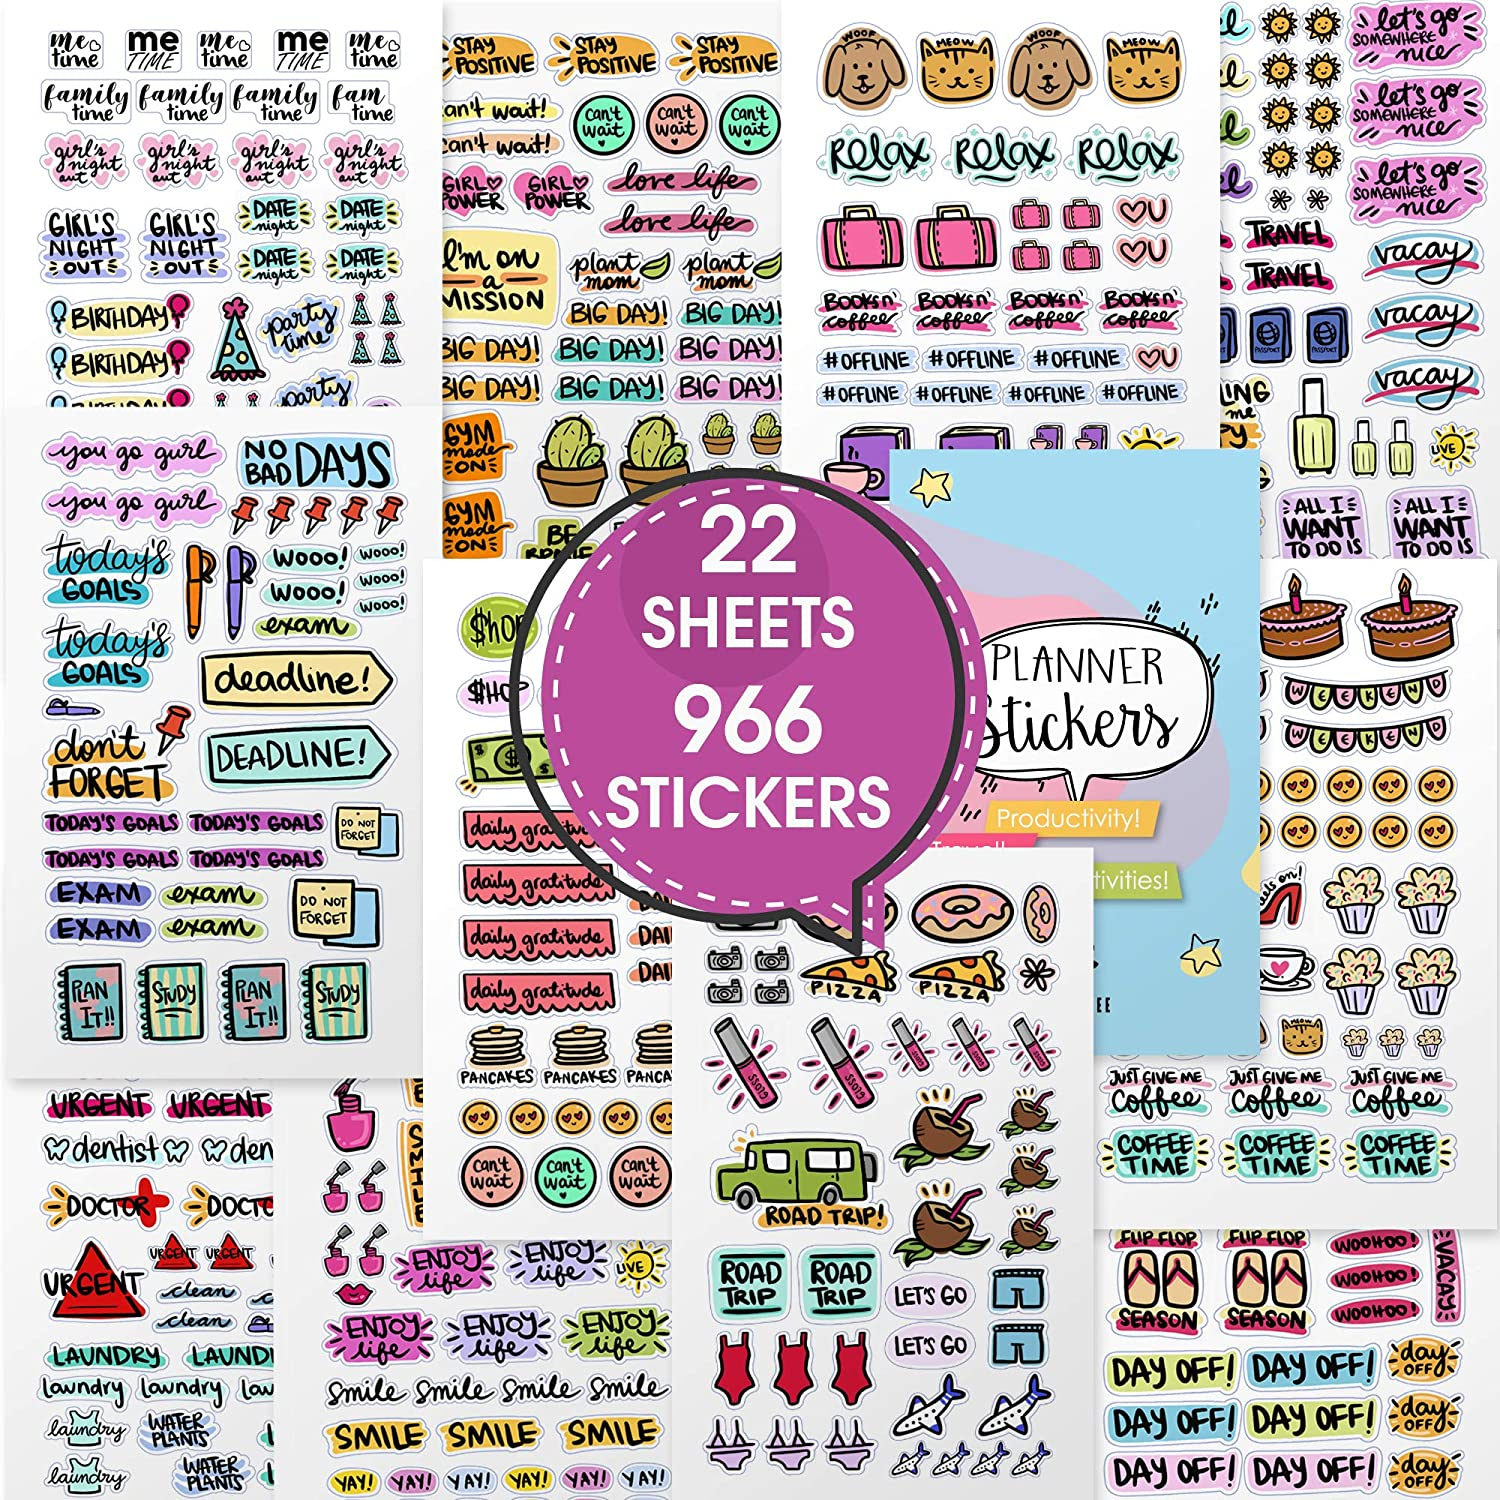 Stunning Planner Stickers - Variety & Value Pack of 966 Beautiful Stickers and Accessories Designed to Complement Your Planner, Journal and Calendar in 2020 by Savvy Bee (Doodly Pack)